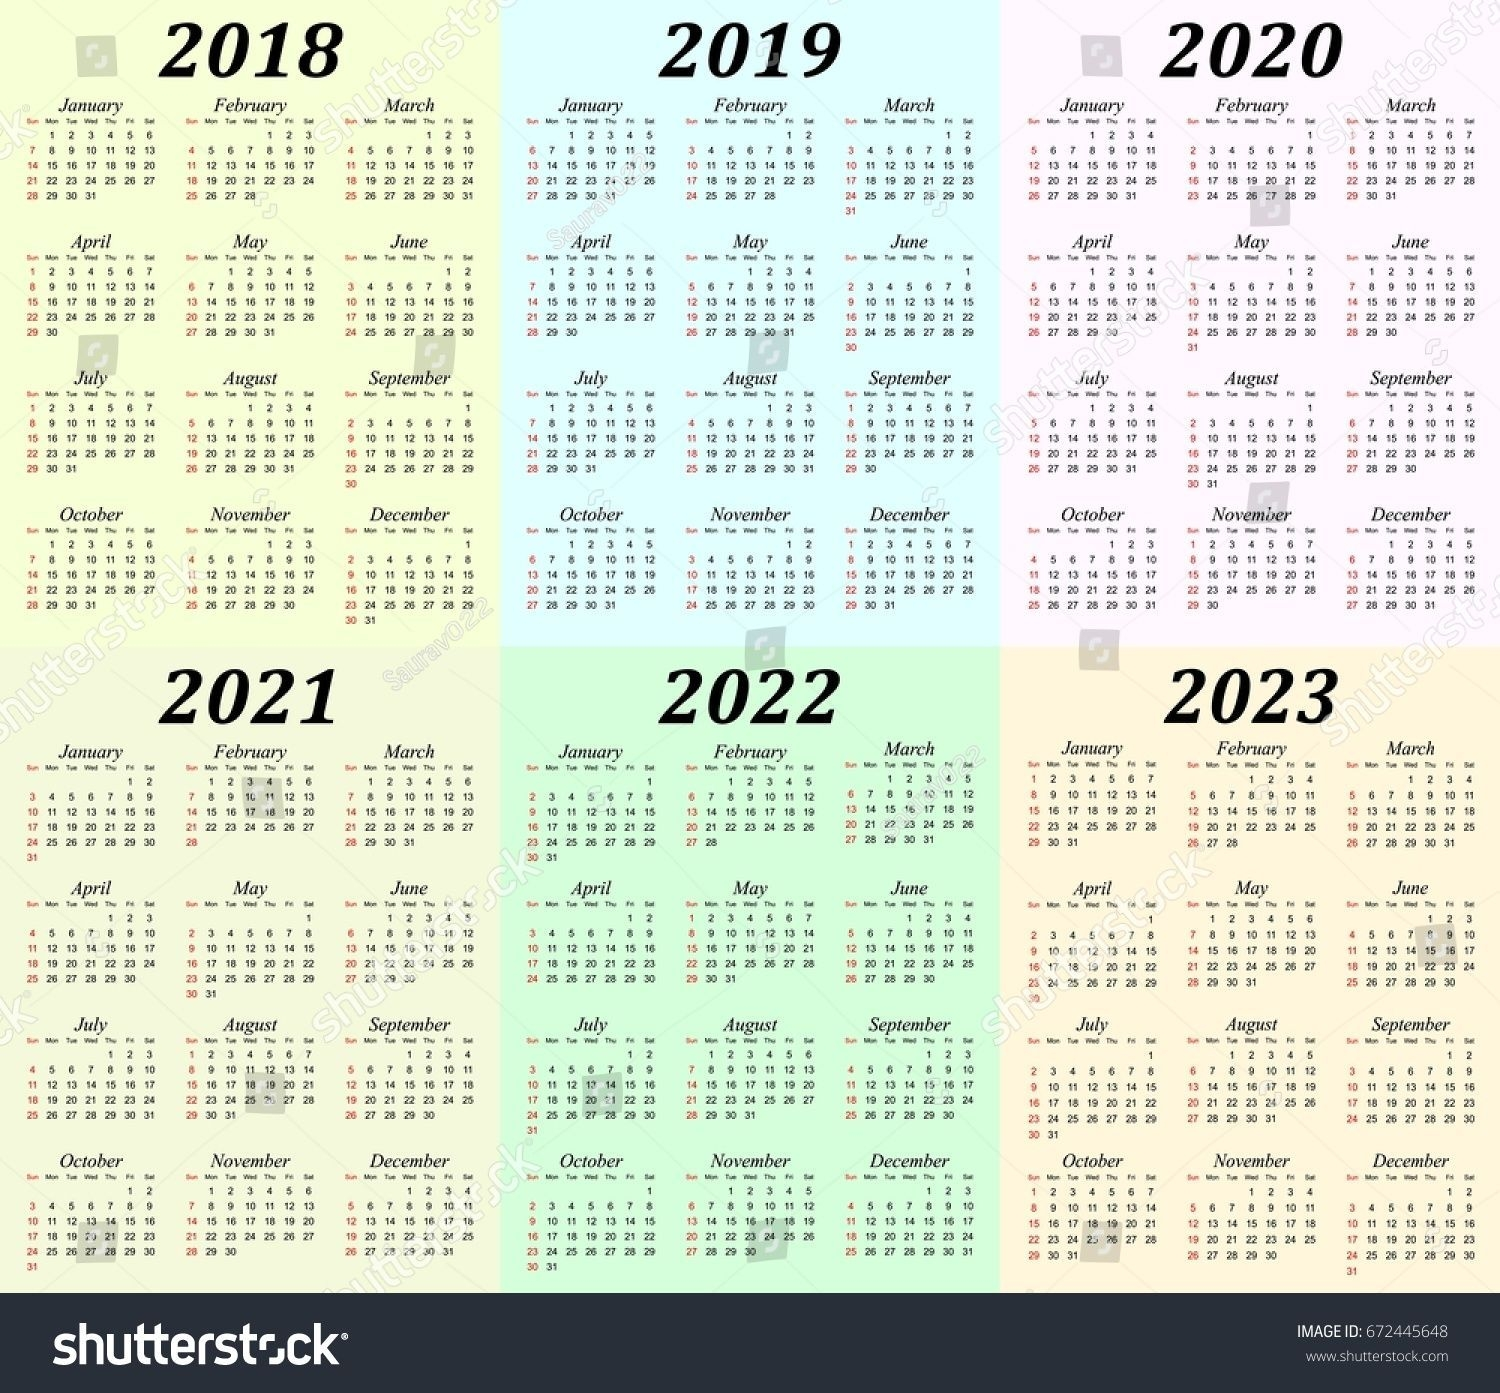 5 Year Calendar 2019 To 2023 In 2020 | Calendar Printables